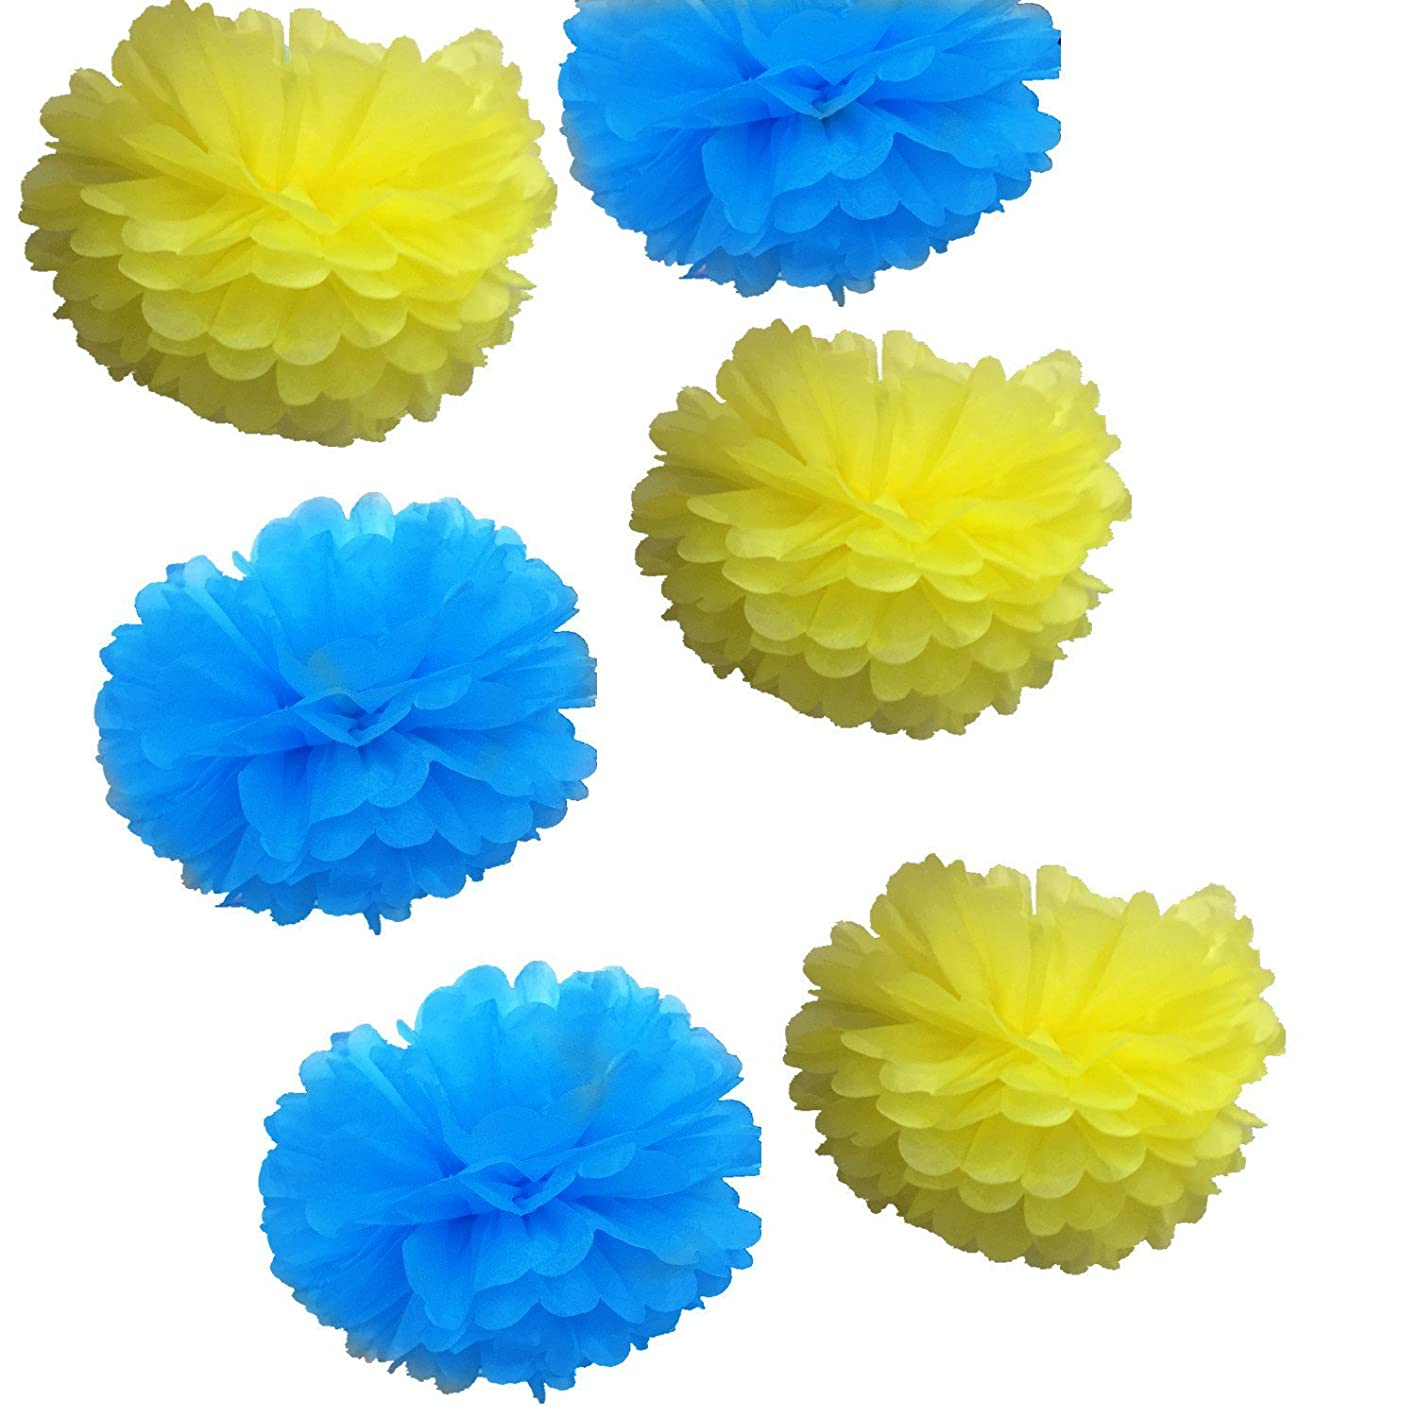 Fonder Mols 14inch Large Blue Yellow Tissue Paper Flowers Pom Poms Craft Kit for Minions Themed Birthday Party Baby Shower Decorations (Set of 6pcs) mievvliatvc731